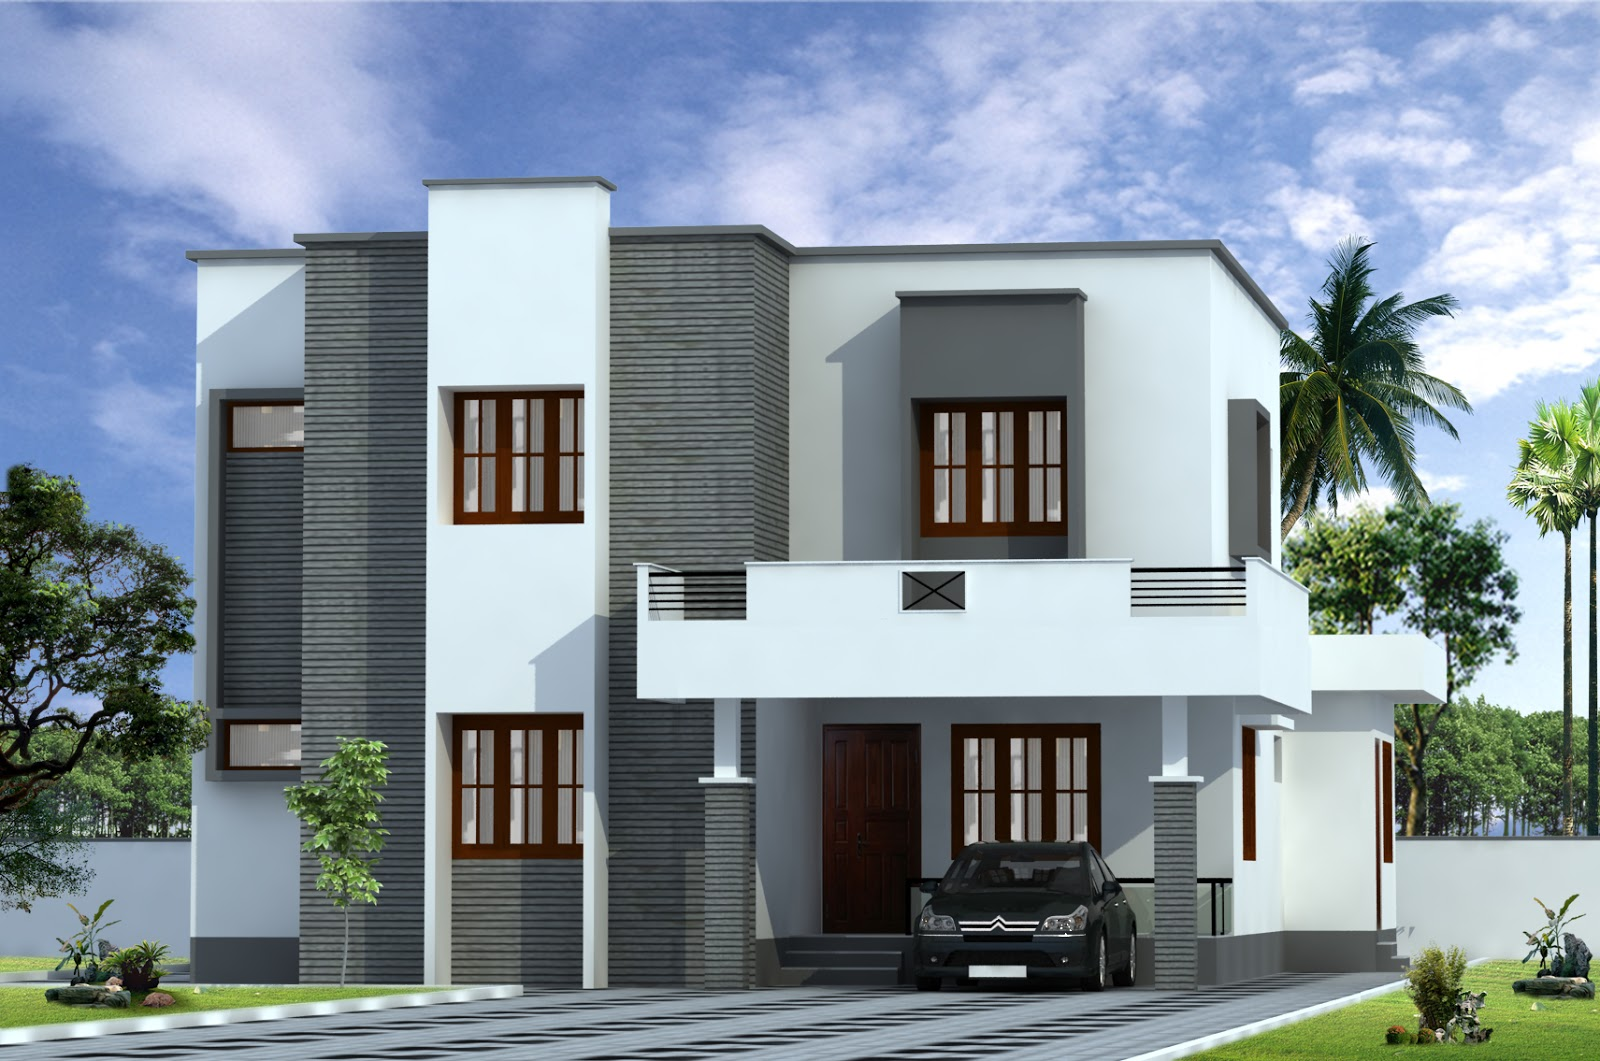 Build a building house designs for House building front design